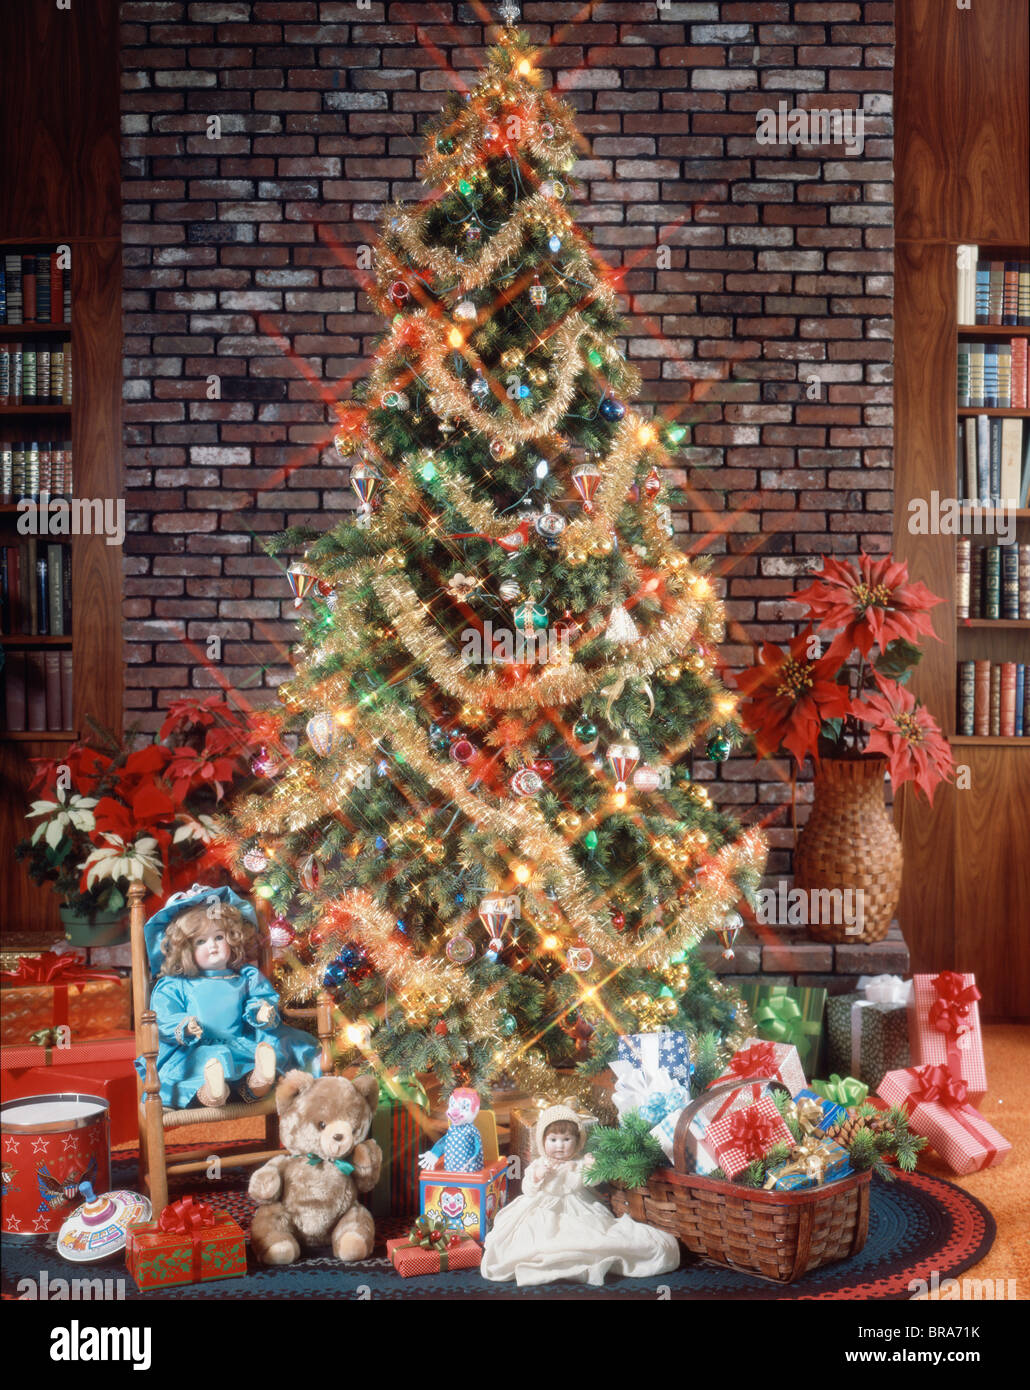 Christmas Tree With Toys : Christmas tree with decorations garland lights toys and